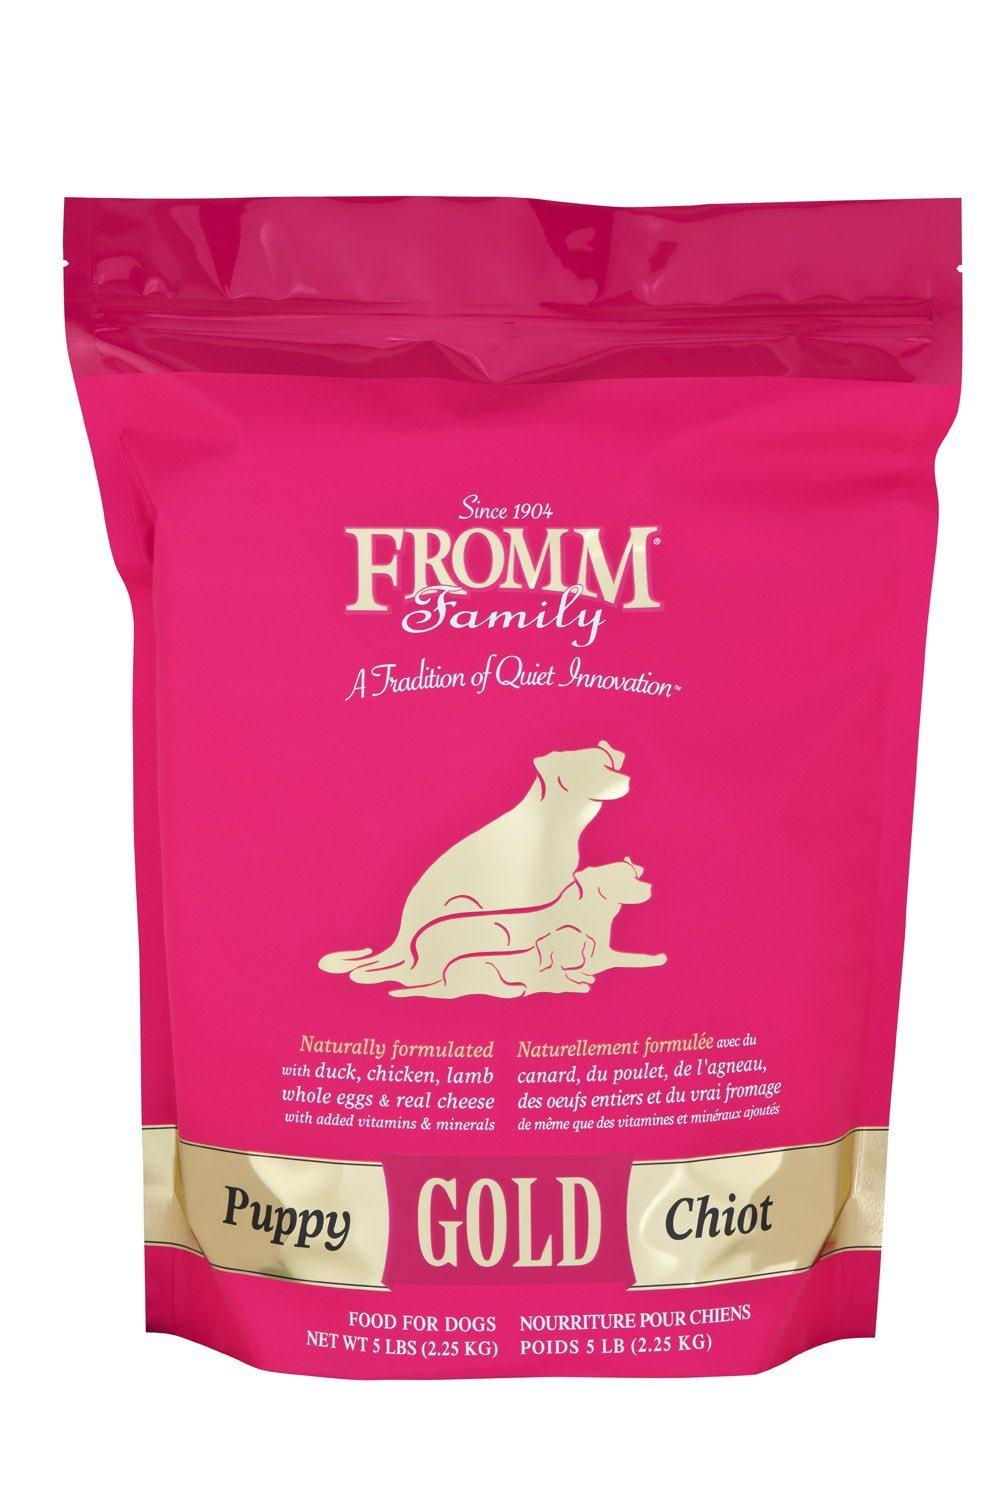 photo of the Fromm Family Foods 15 lb Gold Puppy Food